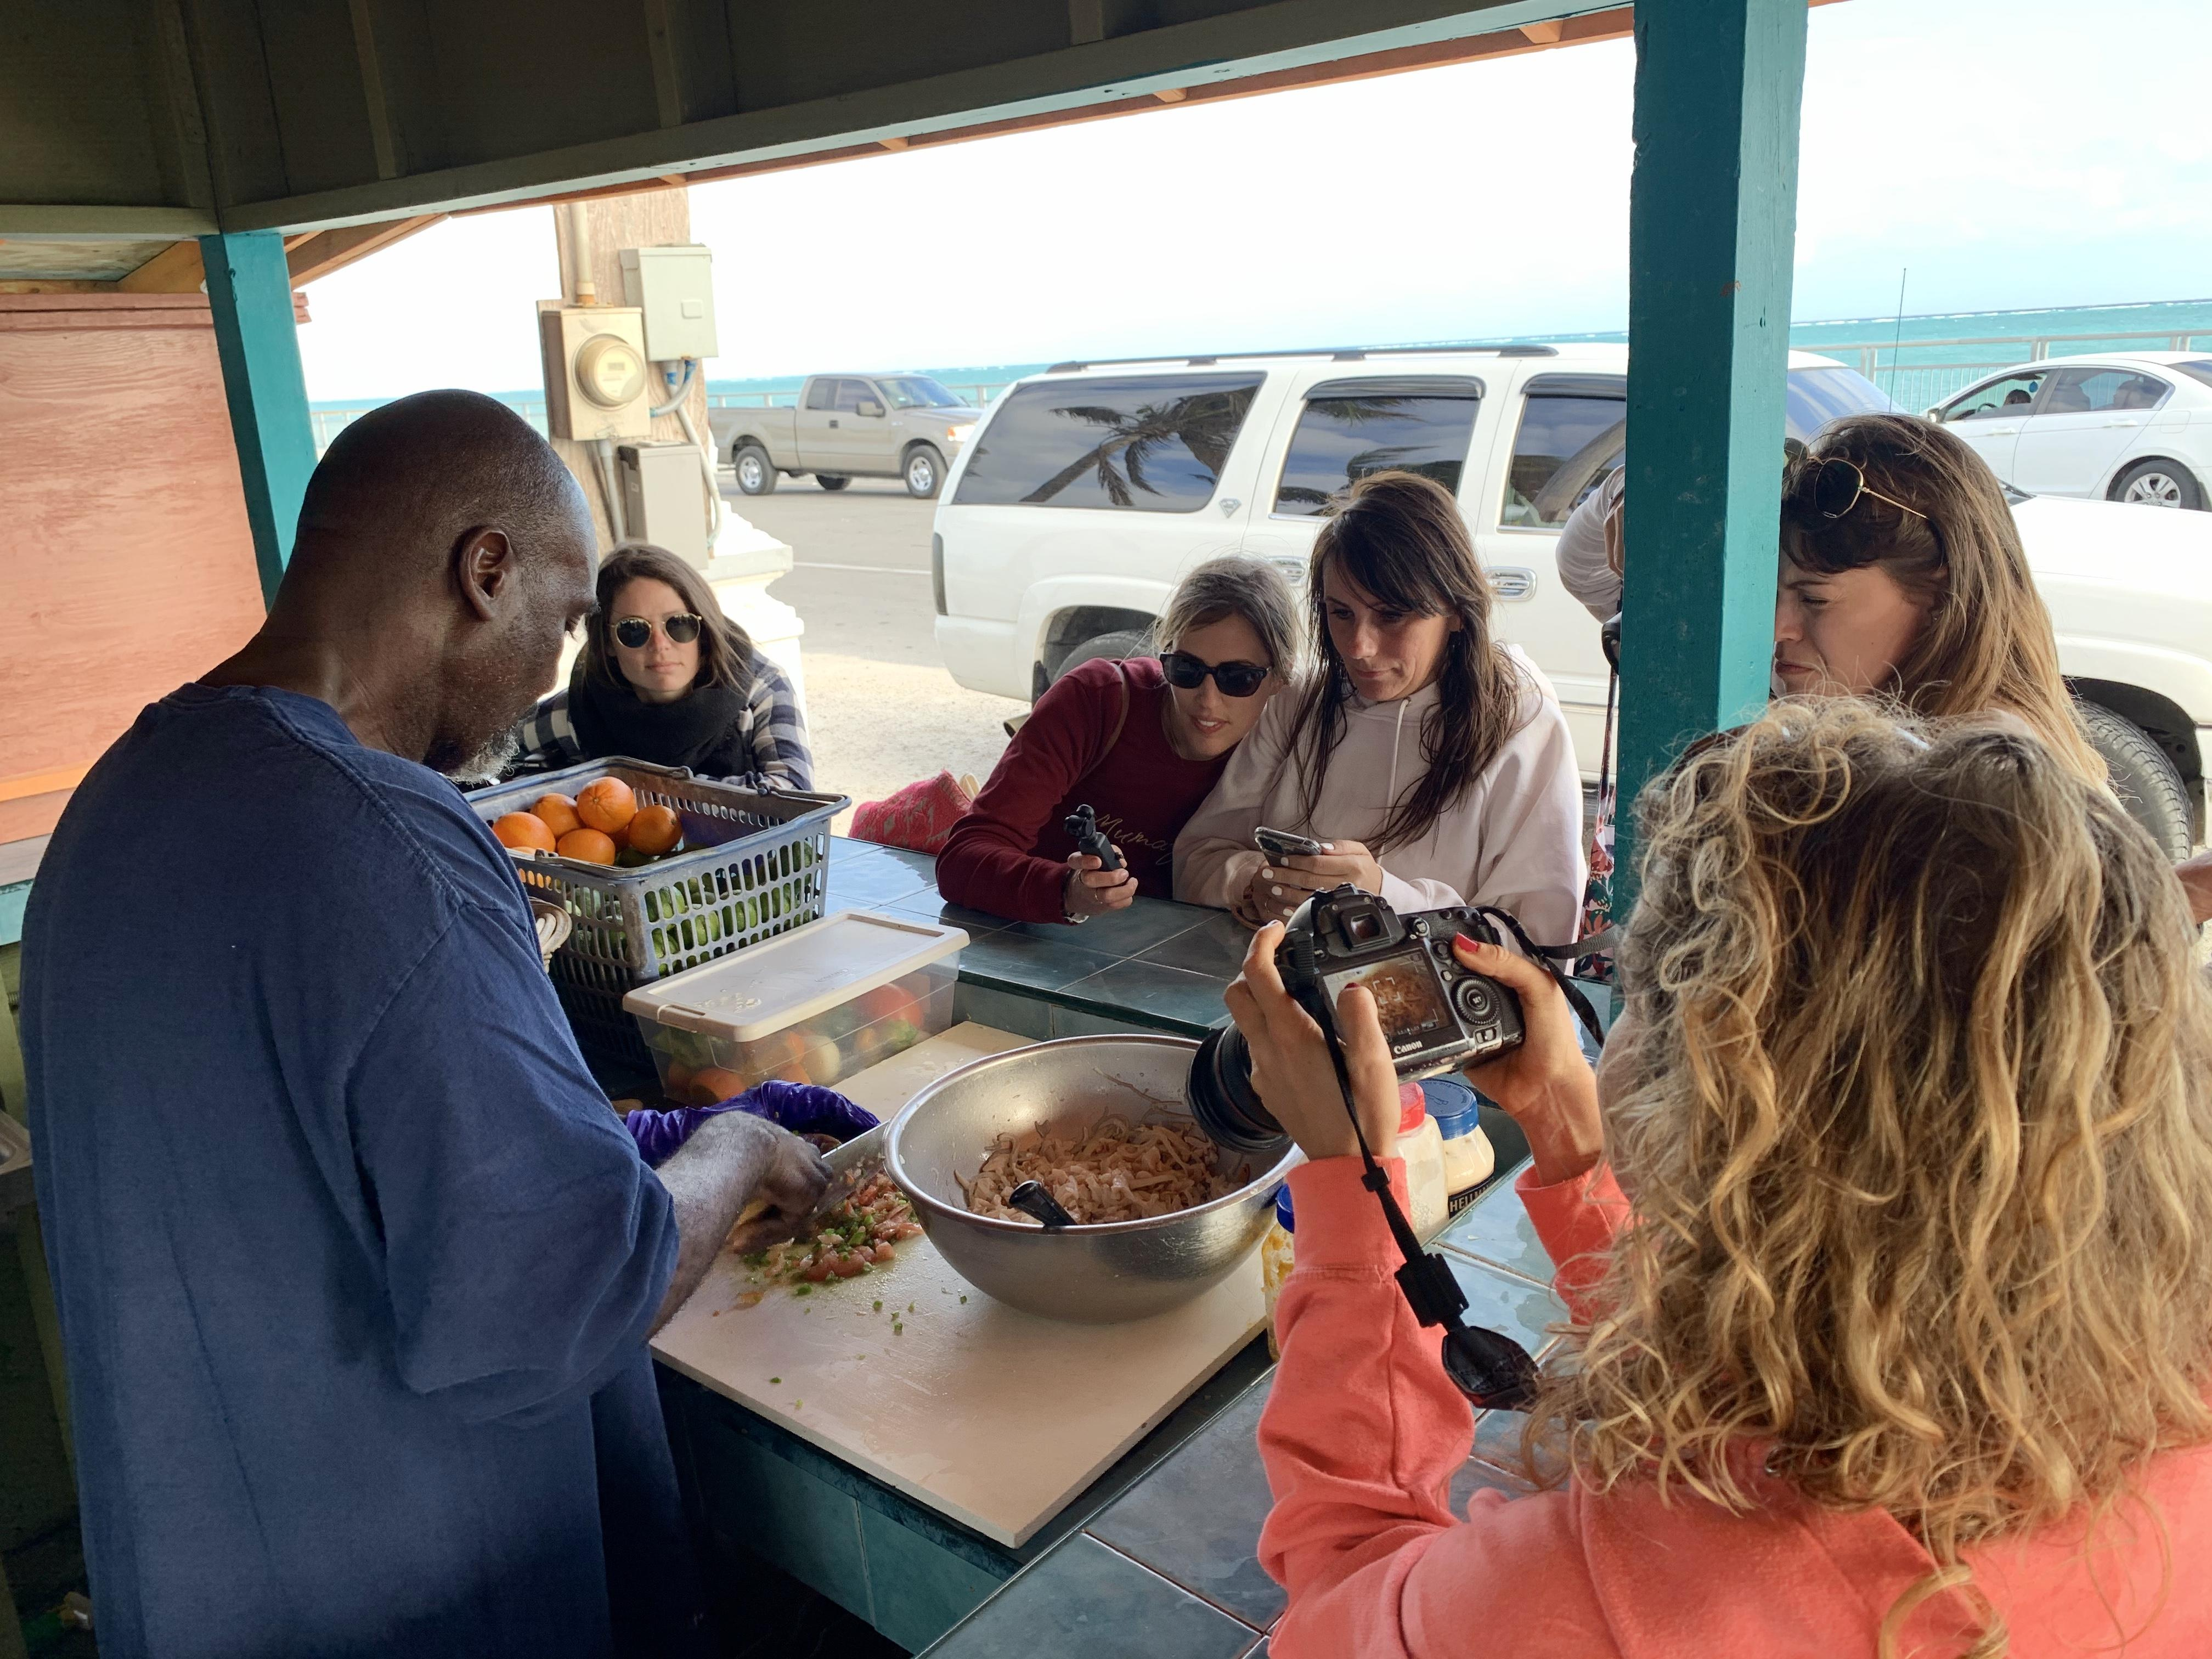 Terry of Terry's Conch Stand in Smith's Point shows his guests how he makes his signature conch salad.